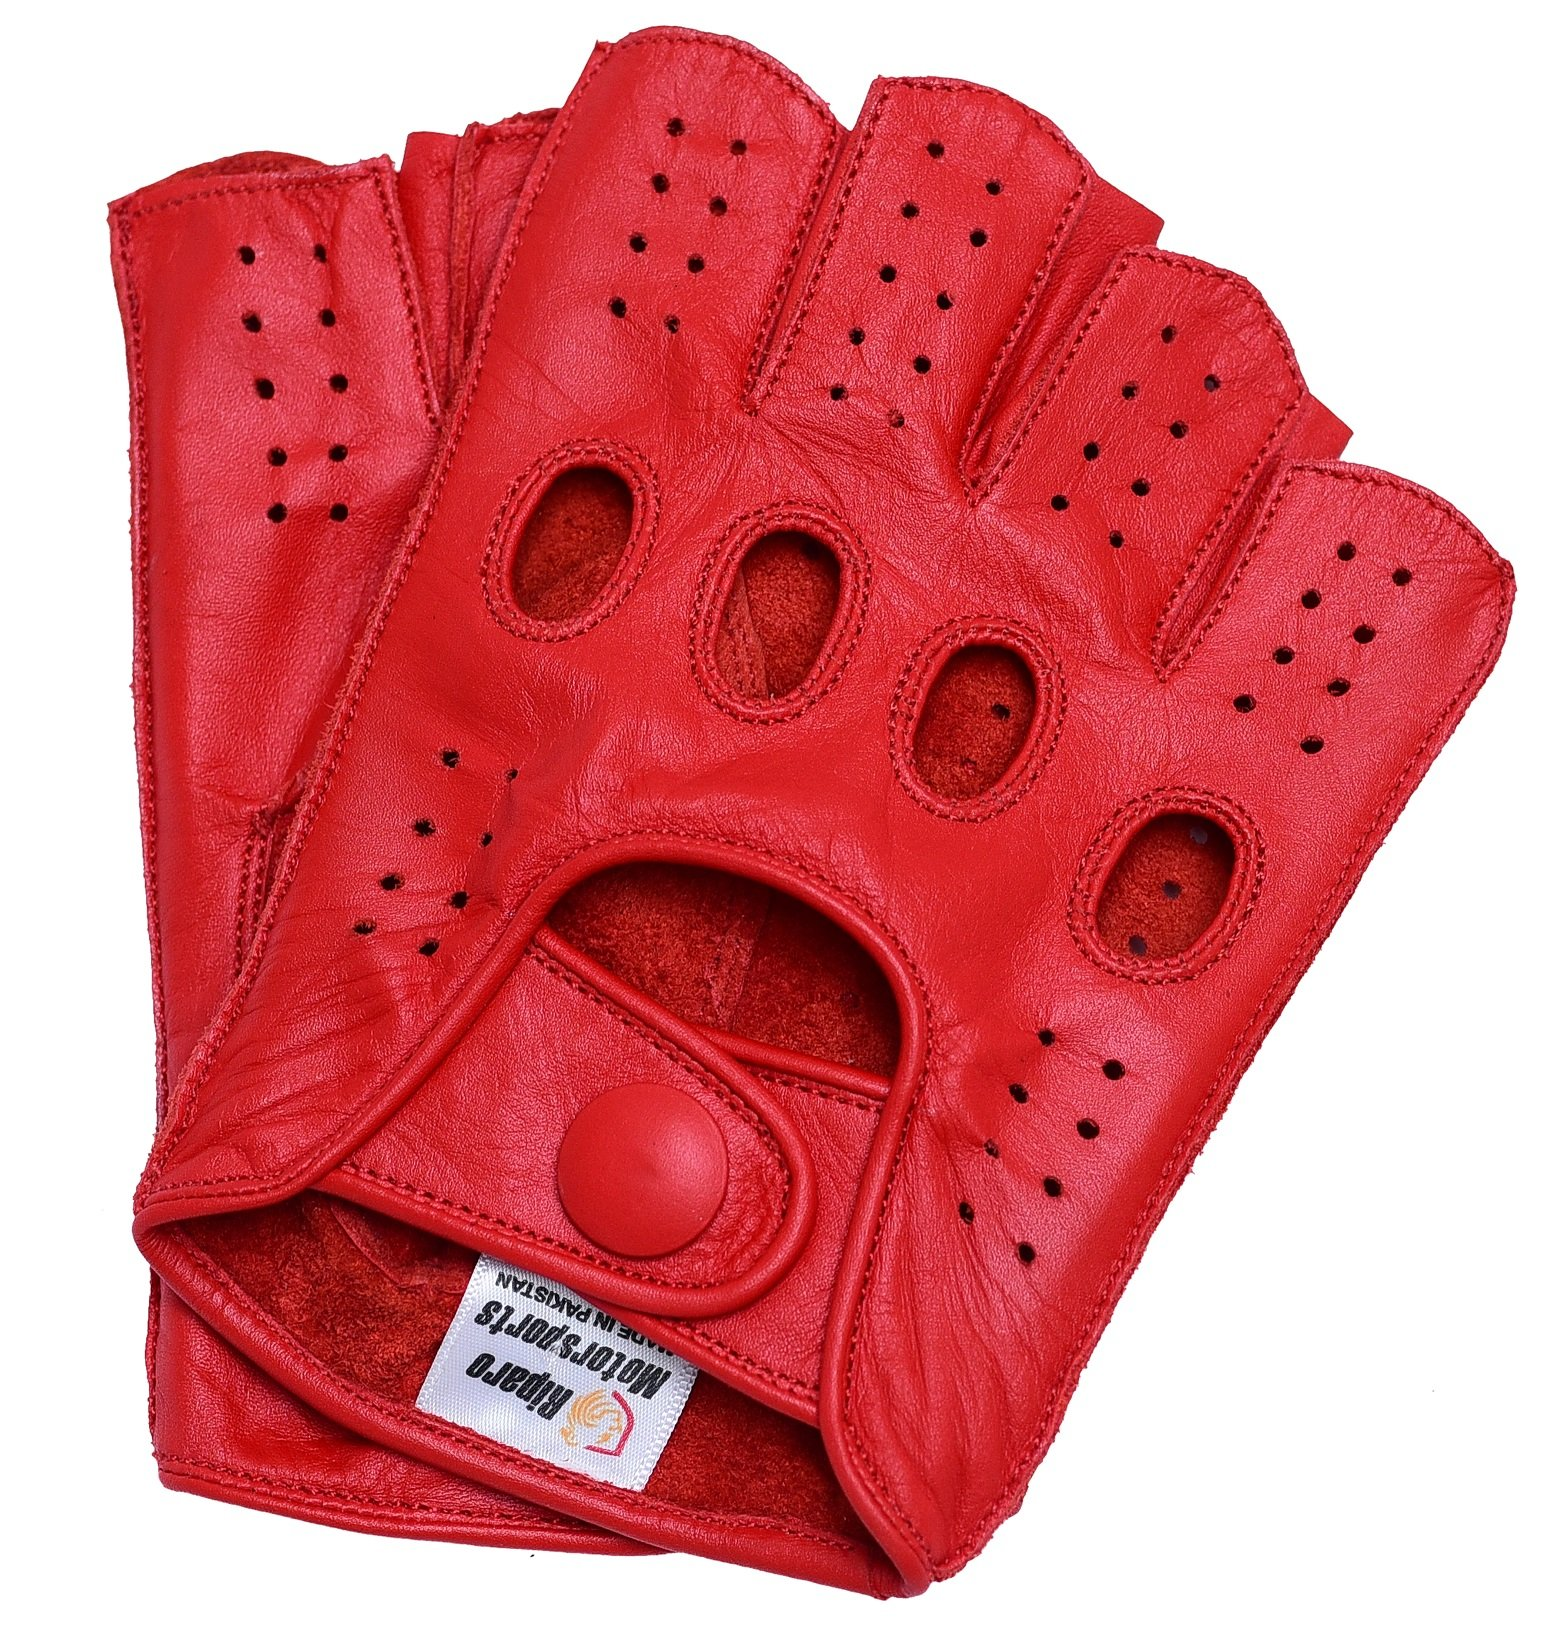 Riparo Mens Leather Reverse Stitched Fingerless Half-Finger Driving Motorcycle Gloves (X-Large, Red)